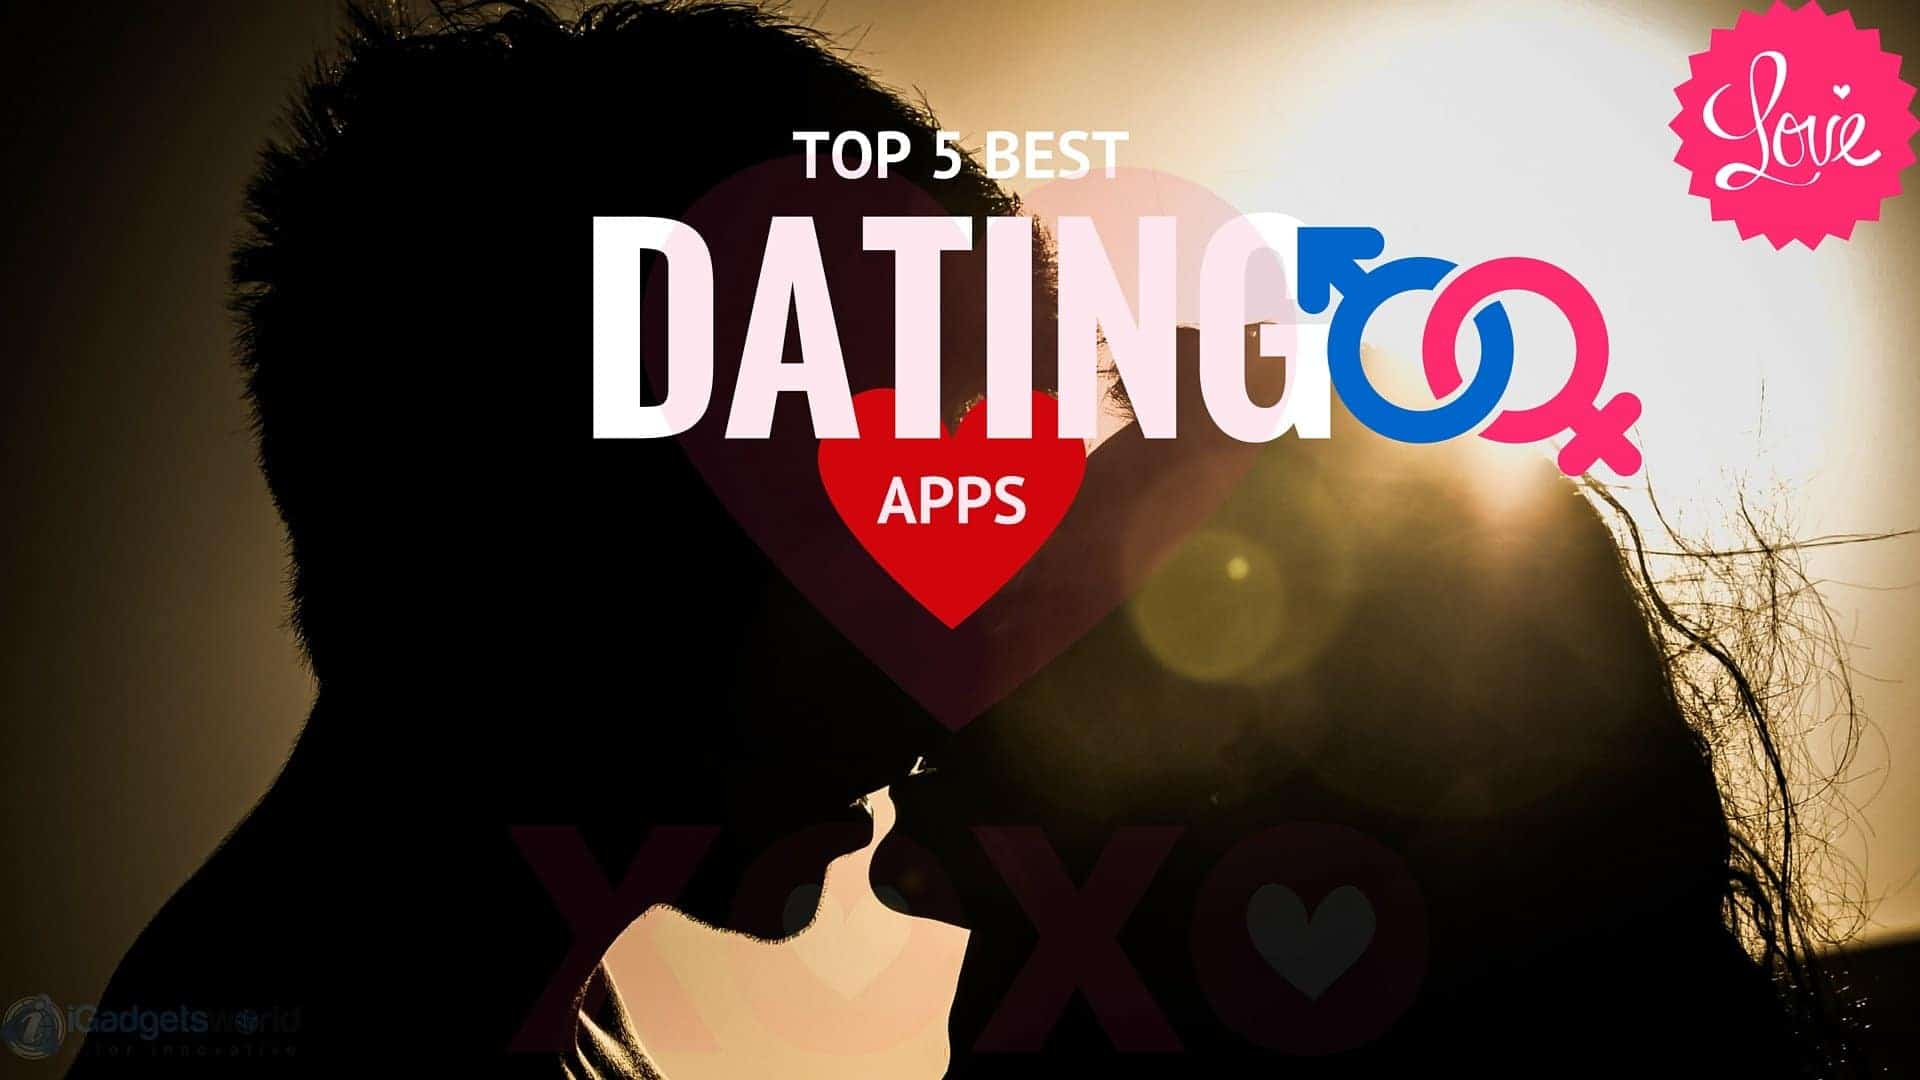 gay dating apps in india Jack'd is the most diverse and authentic app for gay, bi and curious guys to connect, chat, share, and meet.